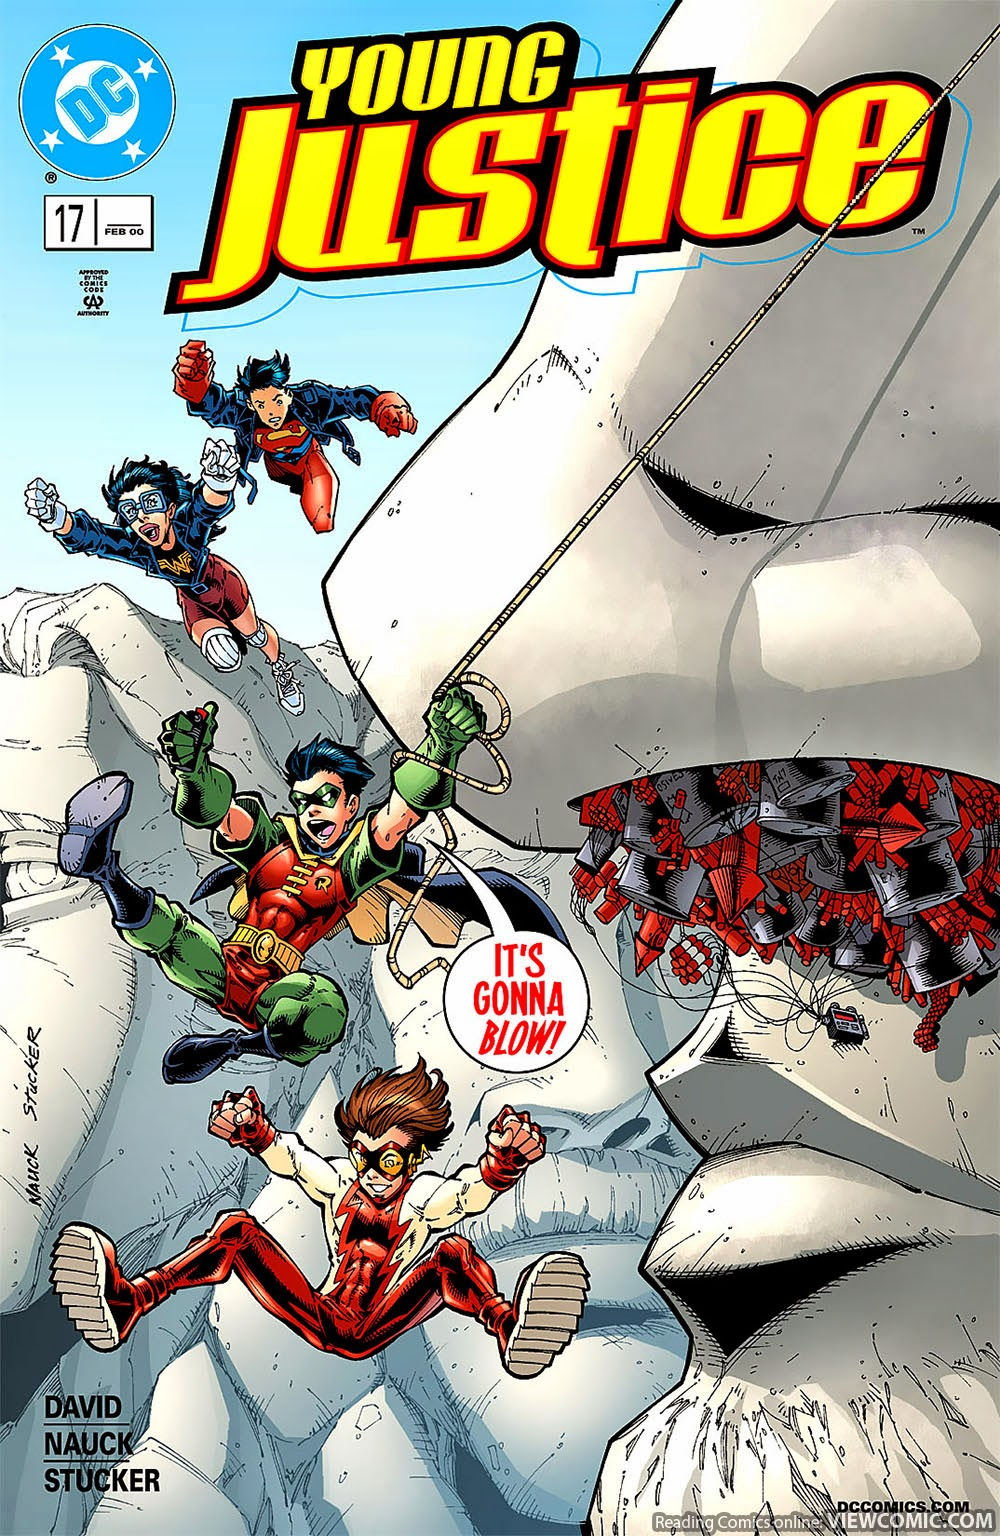 Young Justice 17 2000 Viewcomic Reading Comics Online For Free 2019